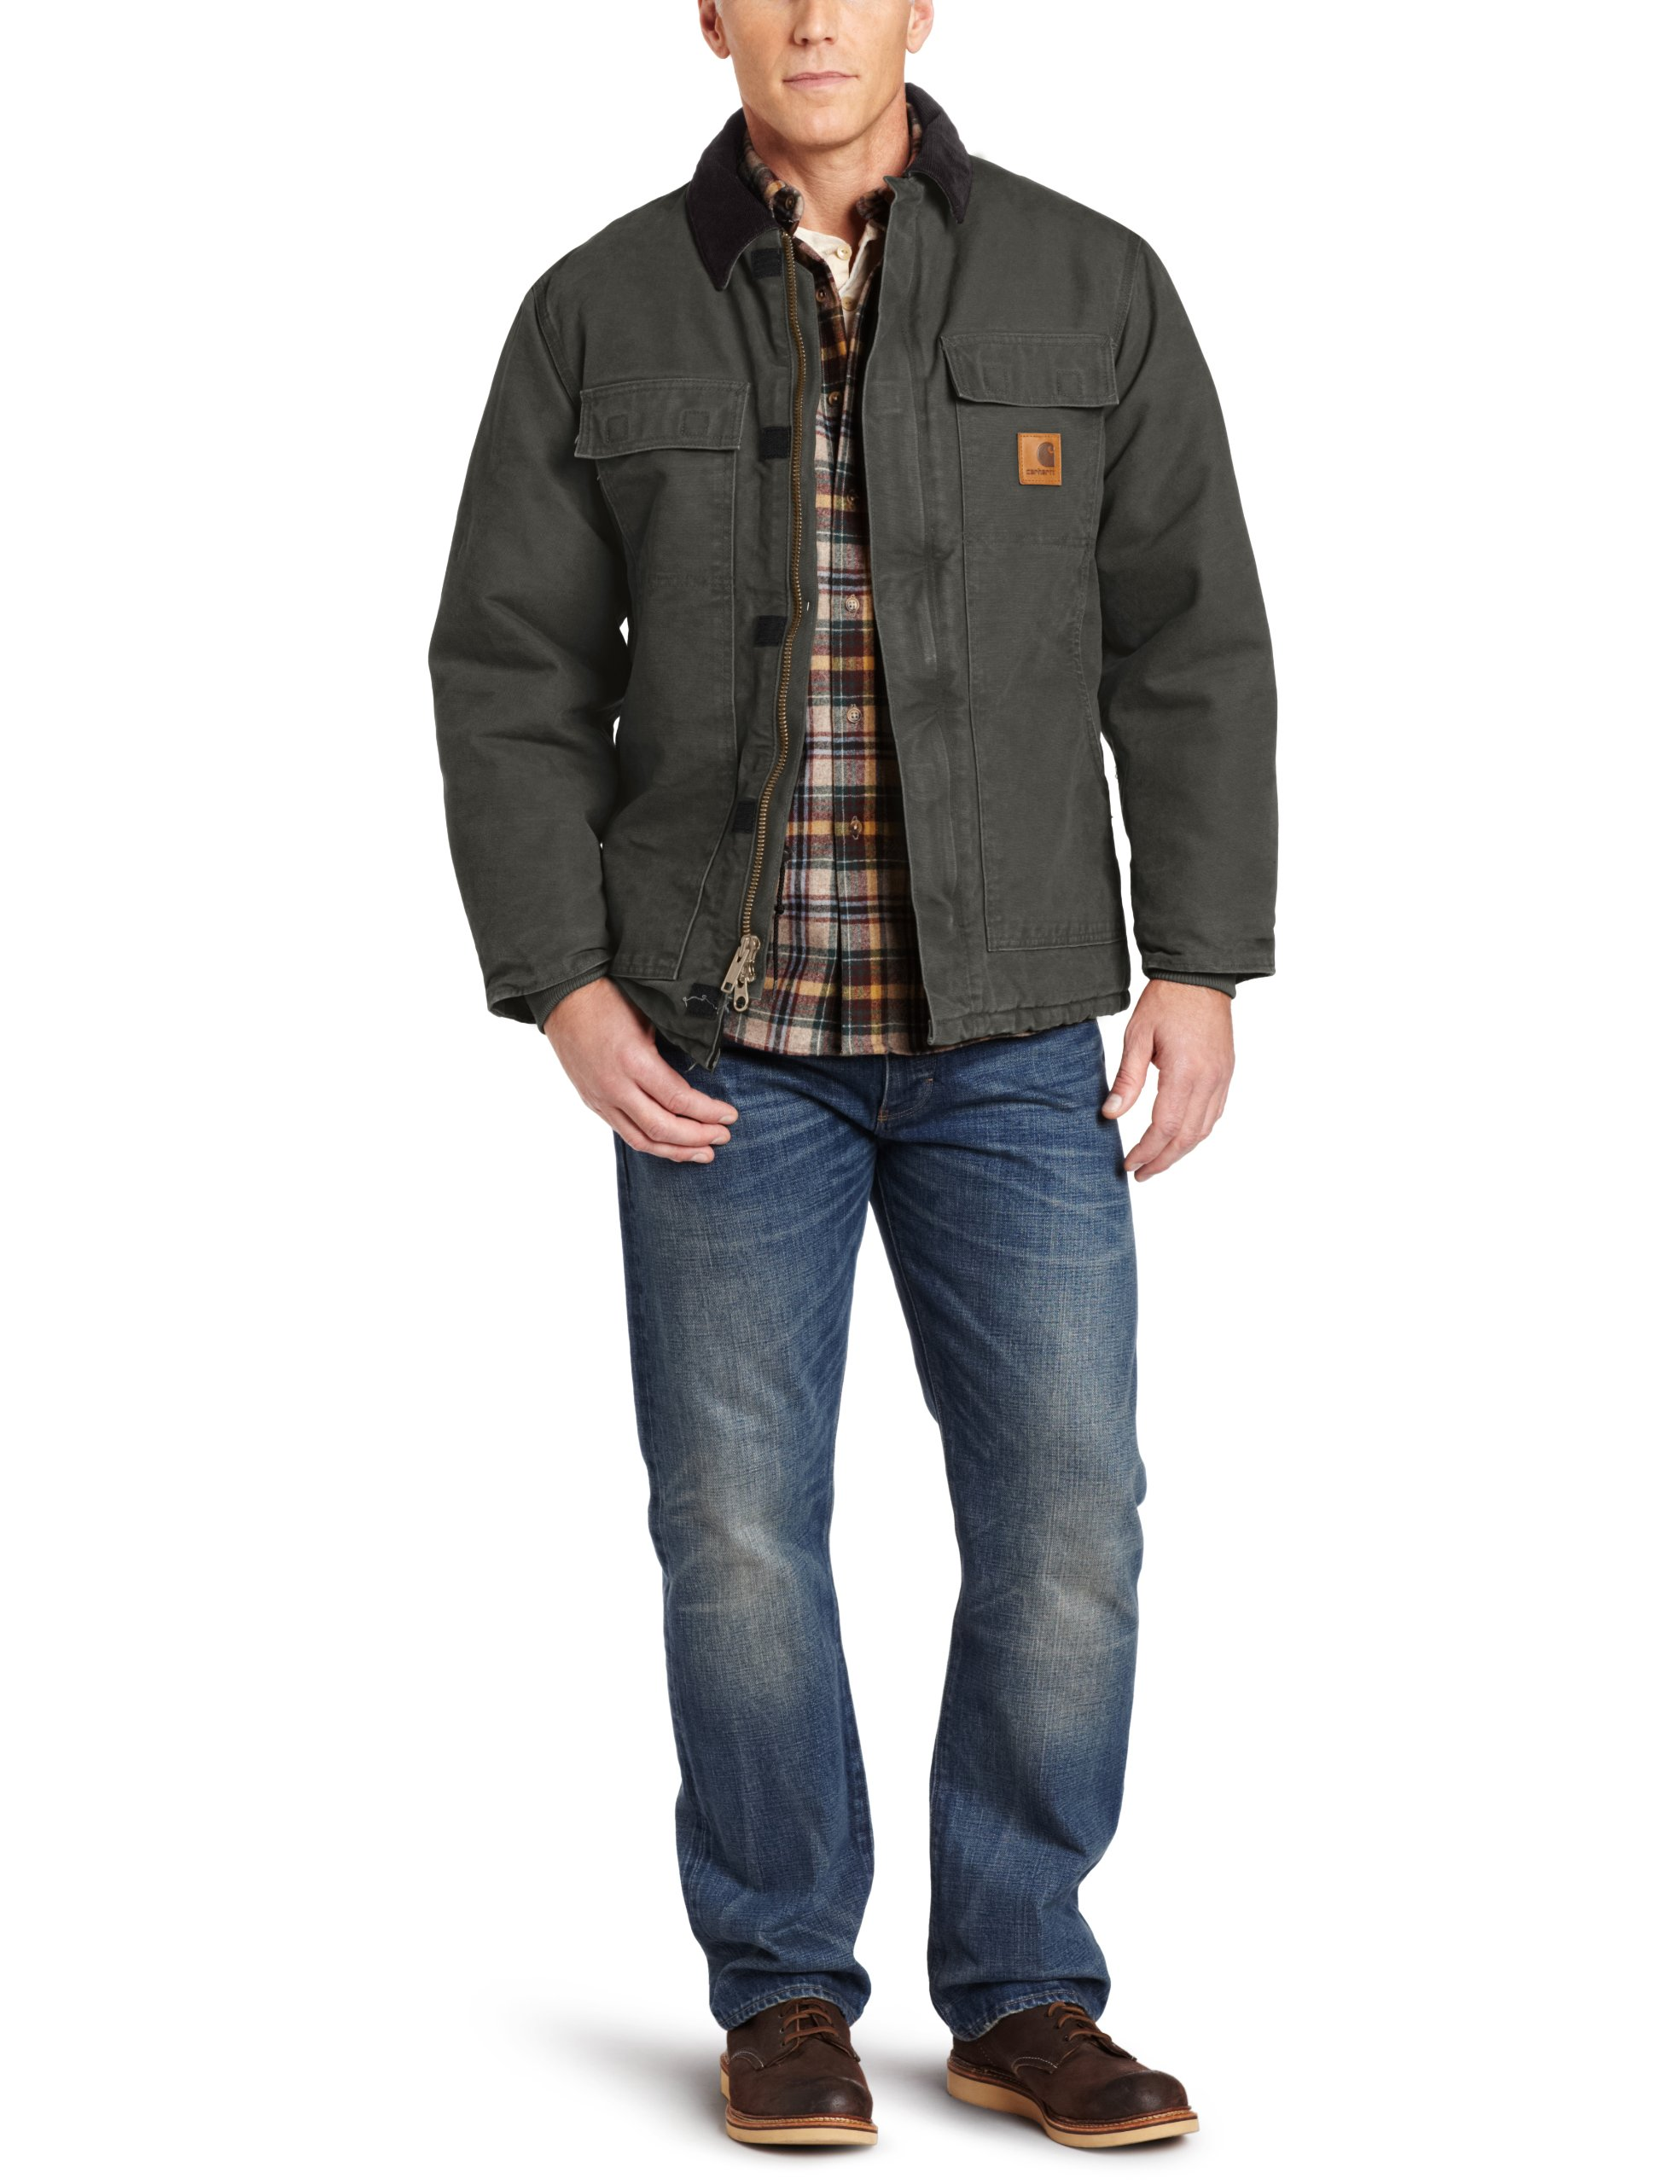 Carhartt Men's Arctic Quilt Lined Sandstone Traditional Coat C26,Moss,XXXXX-Large